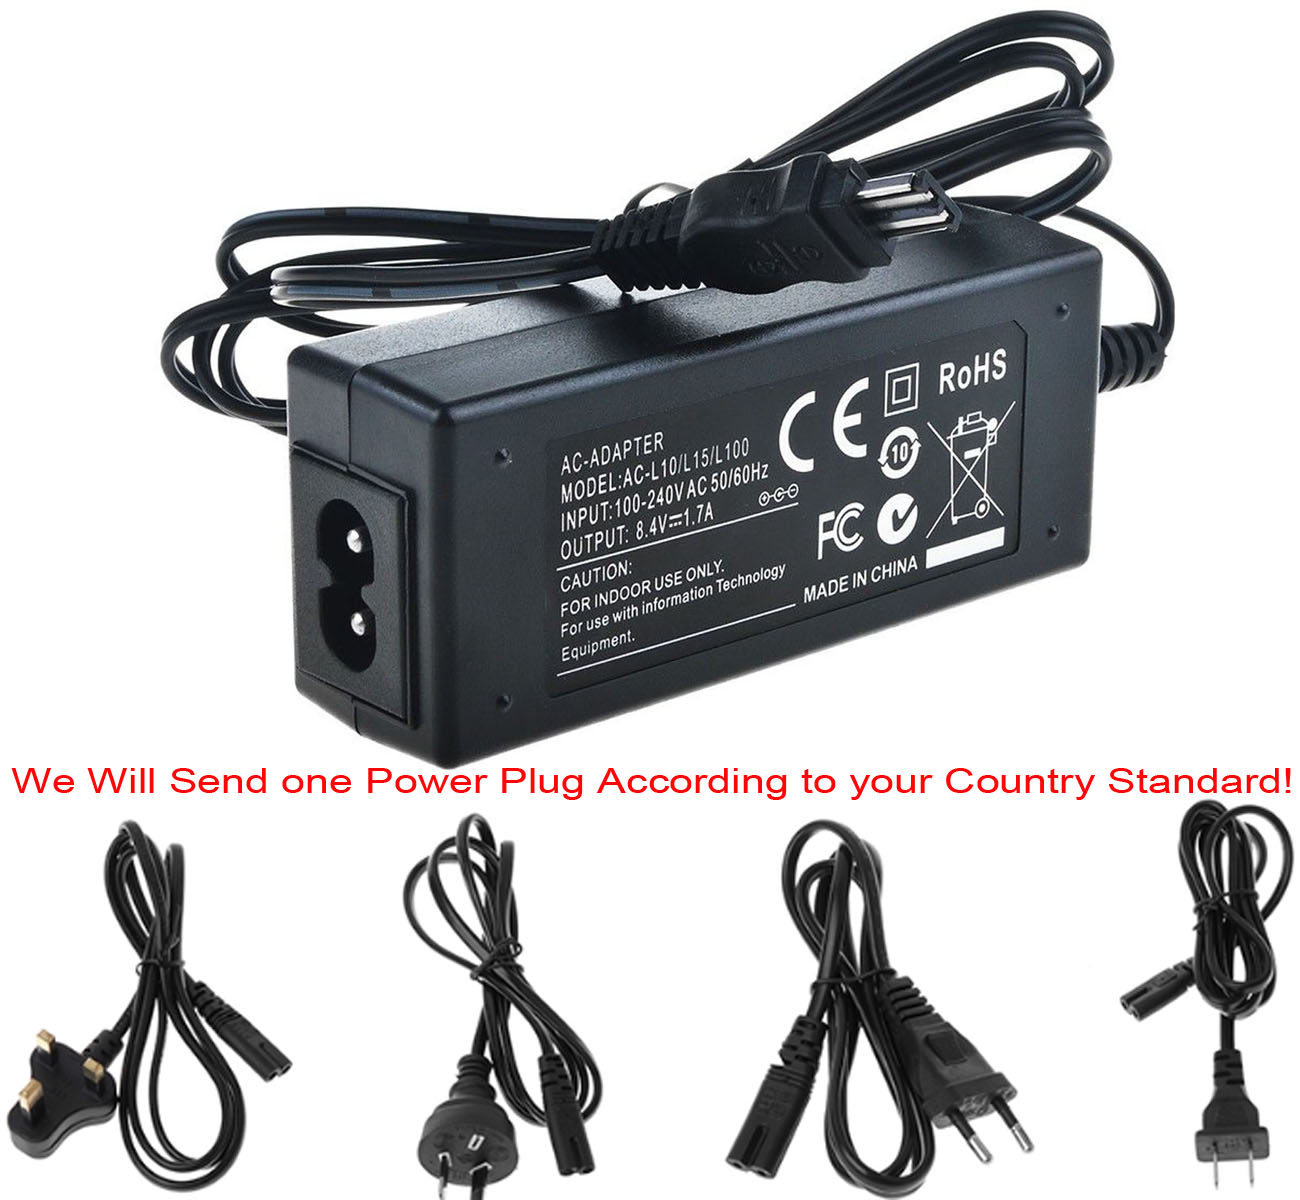 Taelectric AC Wall Battery Power Charger Adapter Compatible Sony DCR-DVD605 Handycam